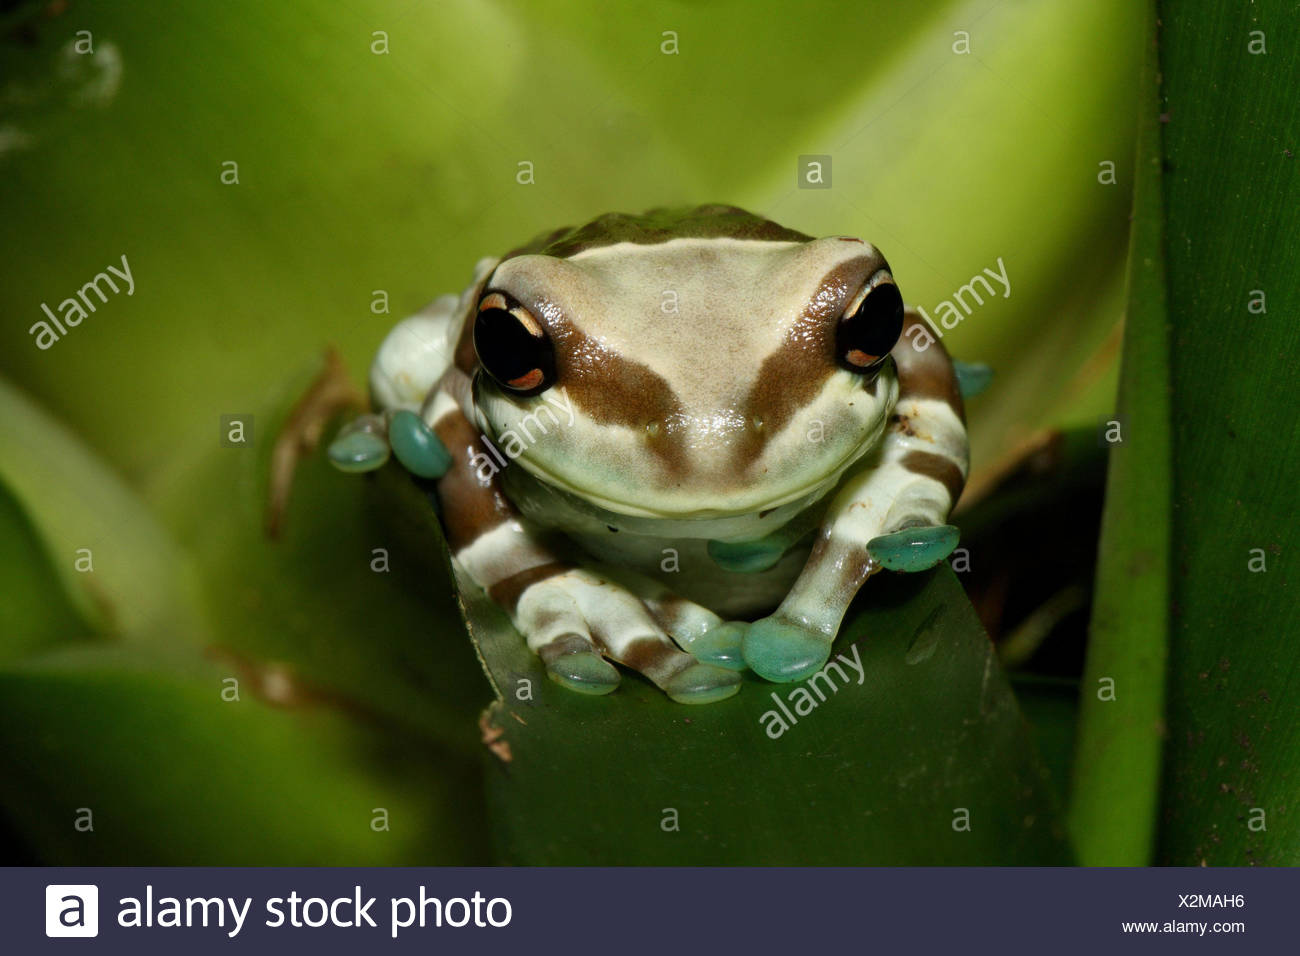 Toad foliage frog, leaves, sit, portrait, tree pits-toad foliage frog, frog, foliage frog, frog Amphibian, amphibian, wild animal, animal, nature, green, Brazil, the Amazon, Amazon region, rainforest, animal portrait, - Stock Image